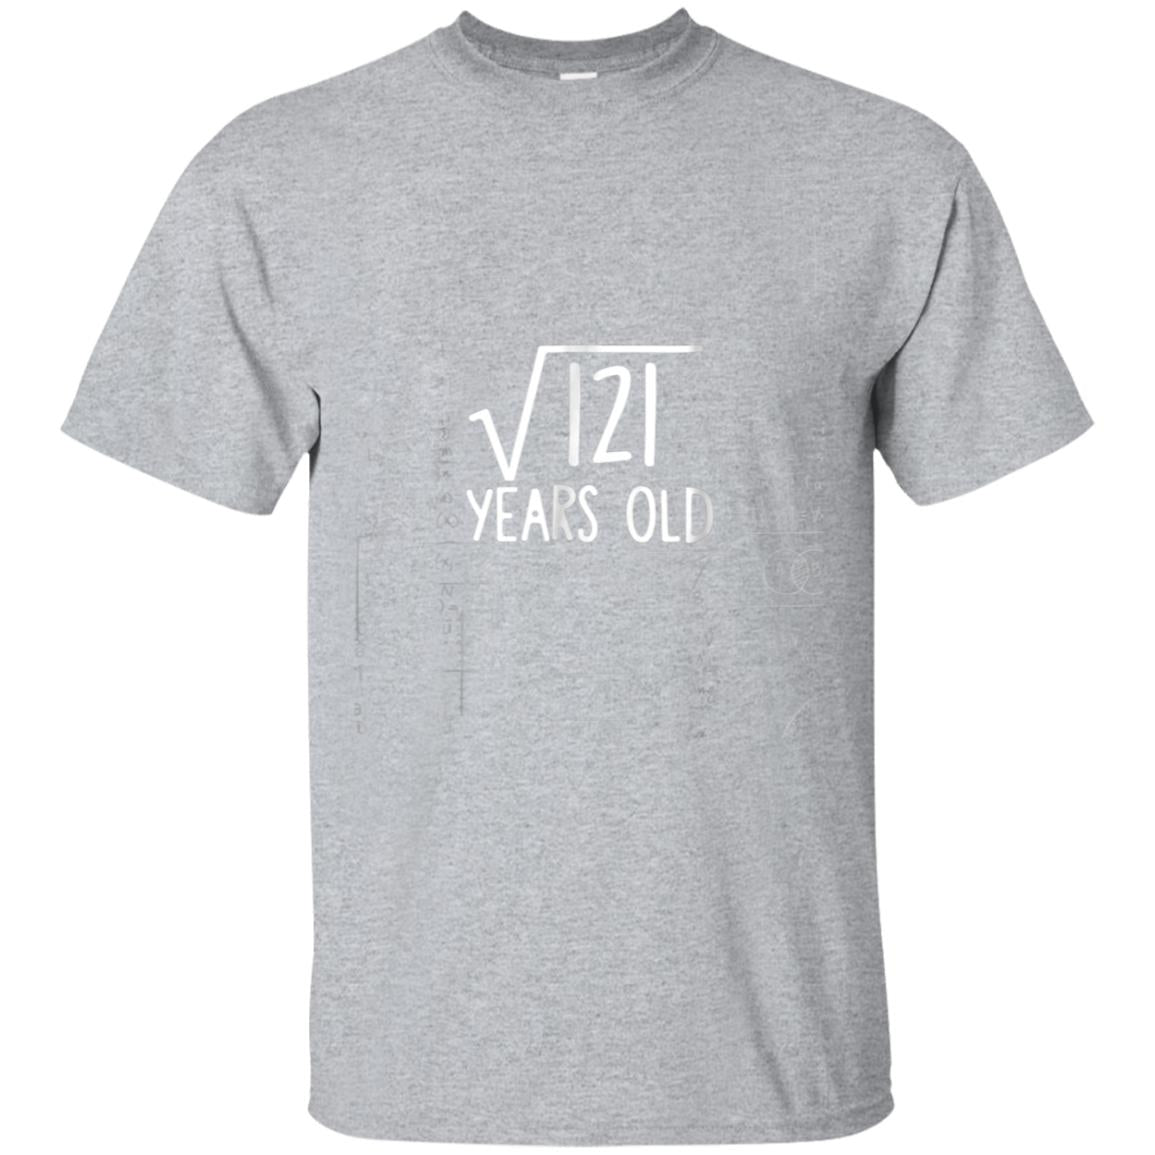 Square Root of 121 11th Birthday 11 Years Old T-Shirt 99promocode